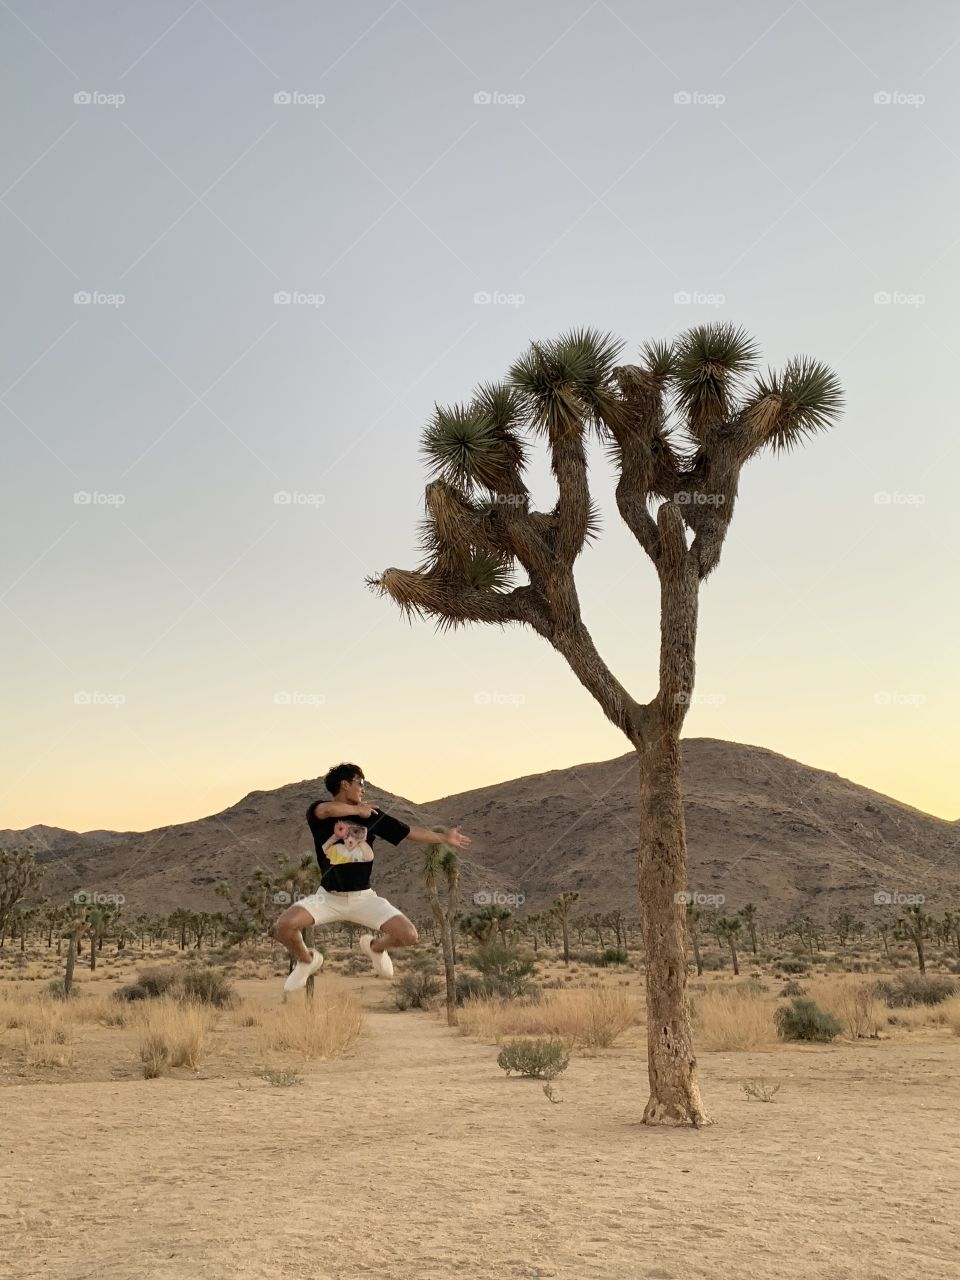 Jumpshot with joshuatree